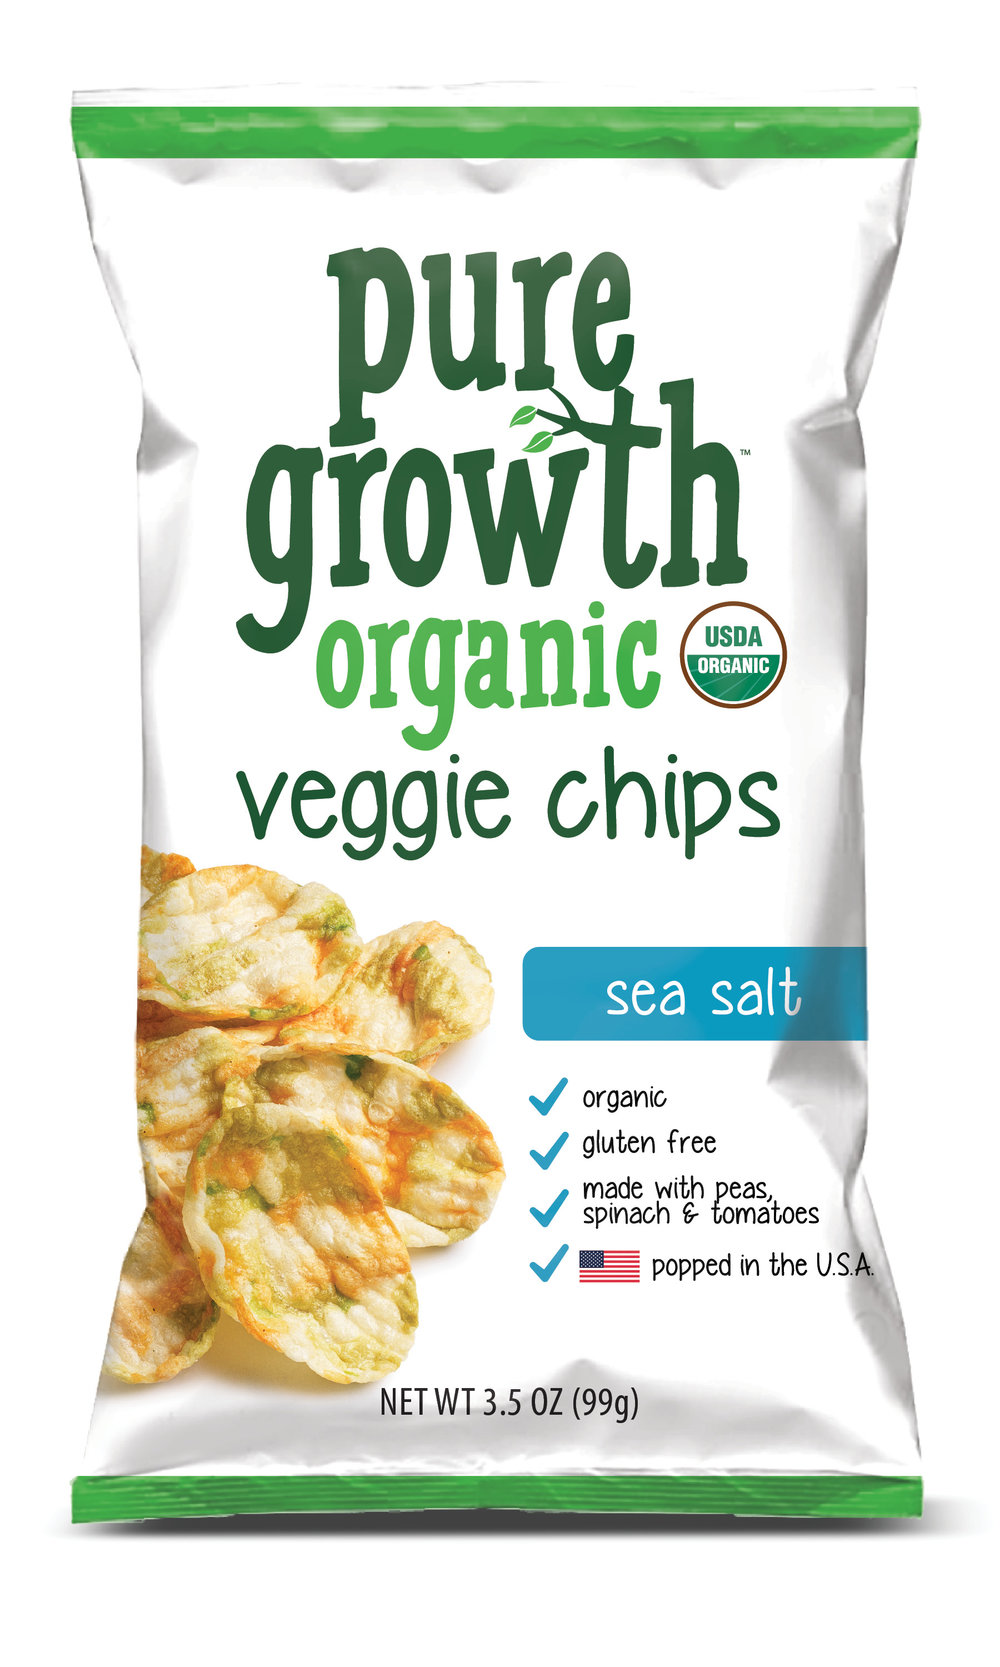 Veggie_Chips_sea_salt.jpg